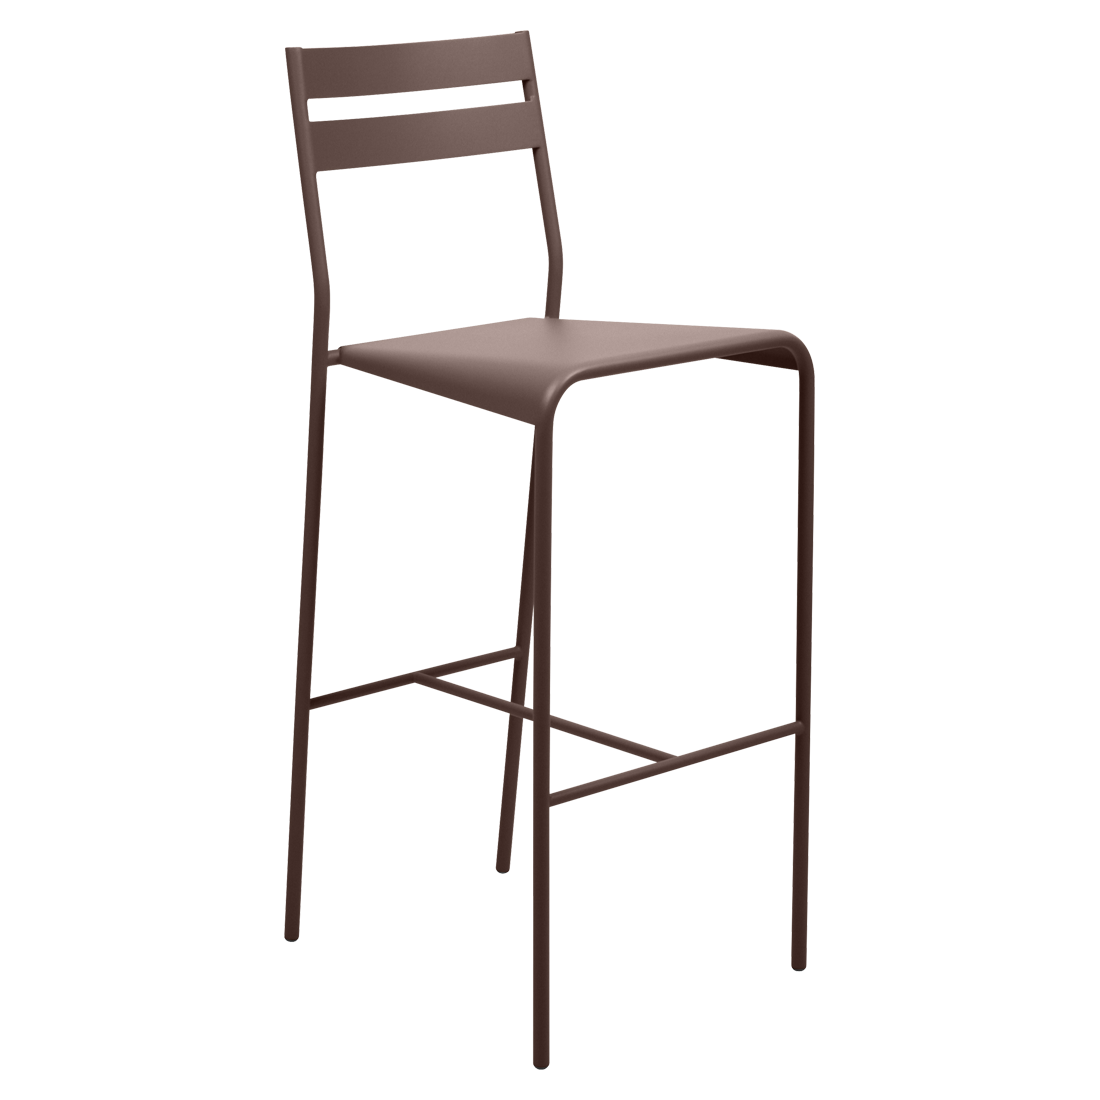 Facto Bar chair, metal bar chair, outdoor furniture